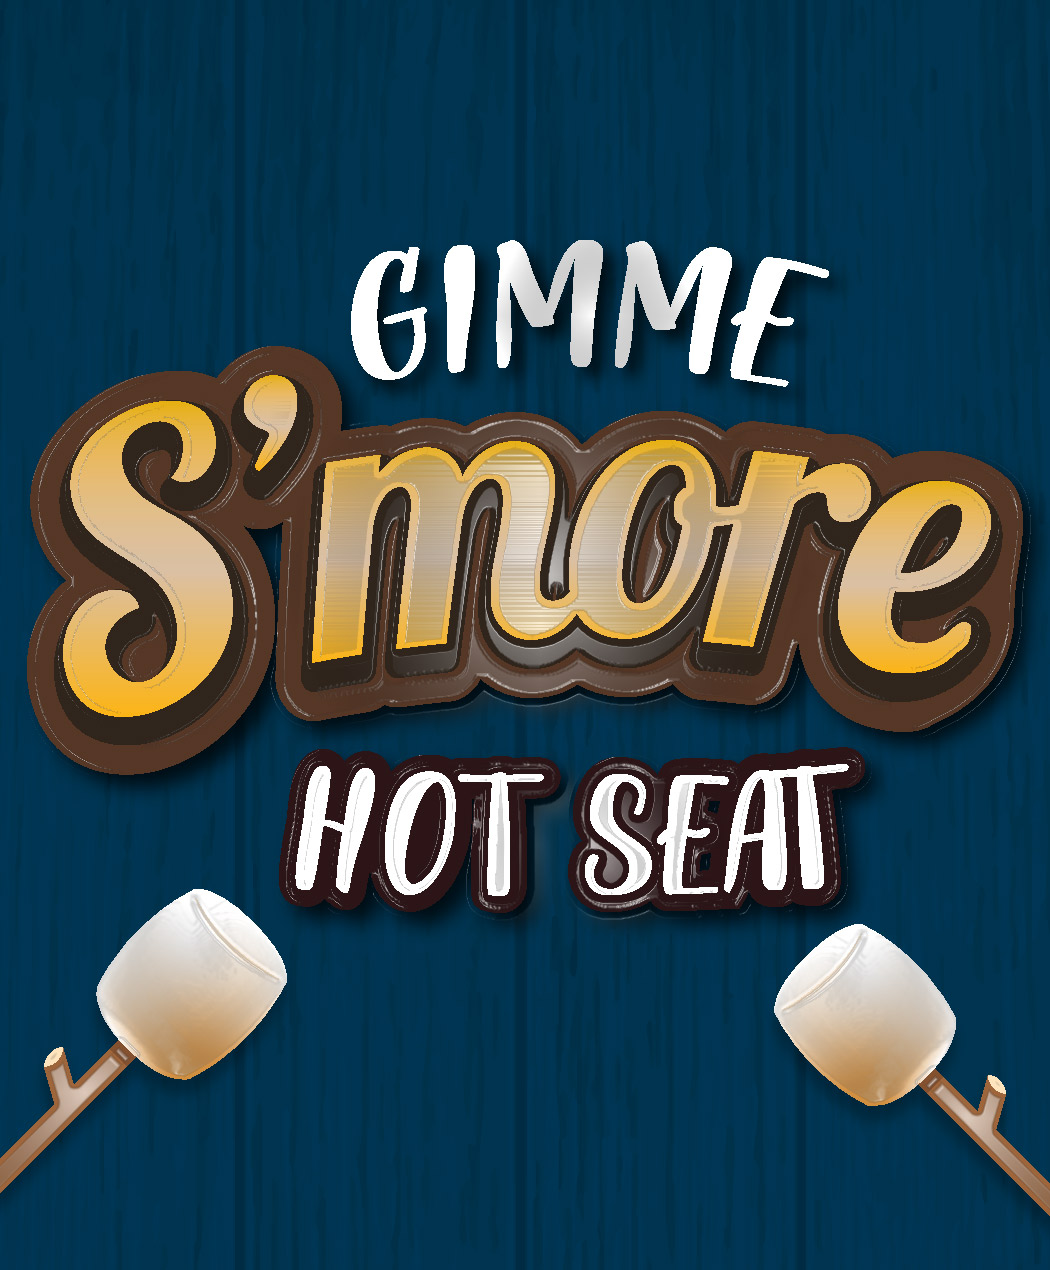 Gimme S'more Hot Seat